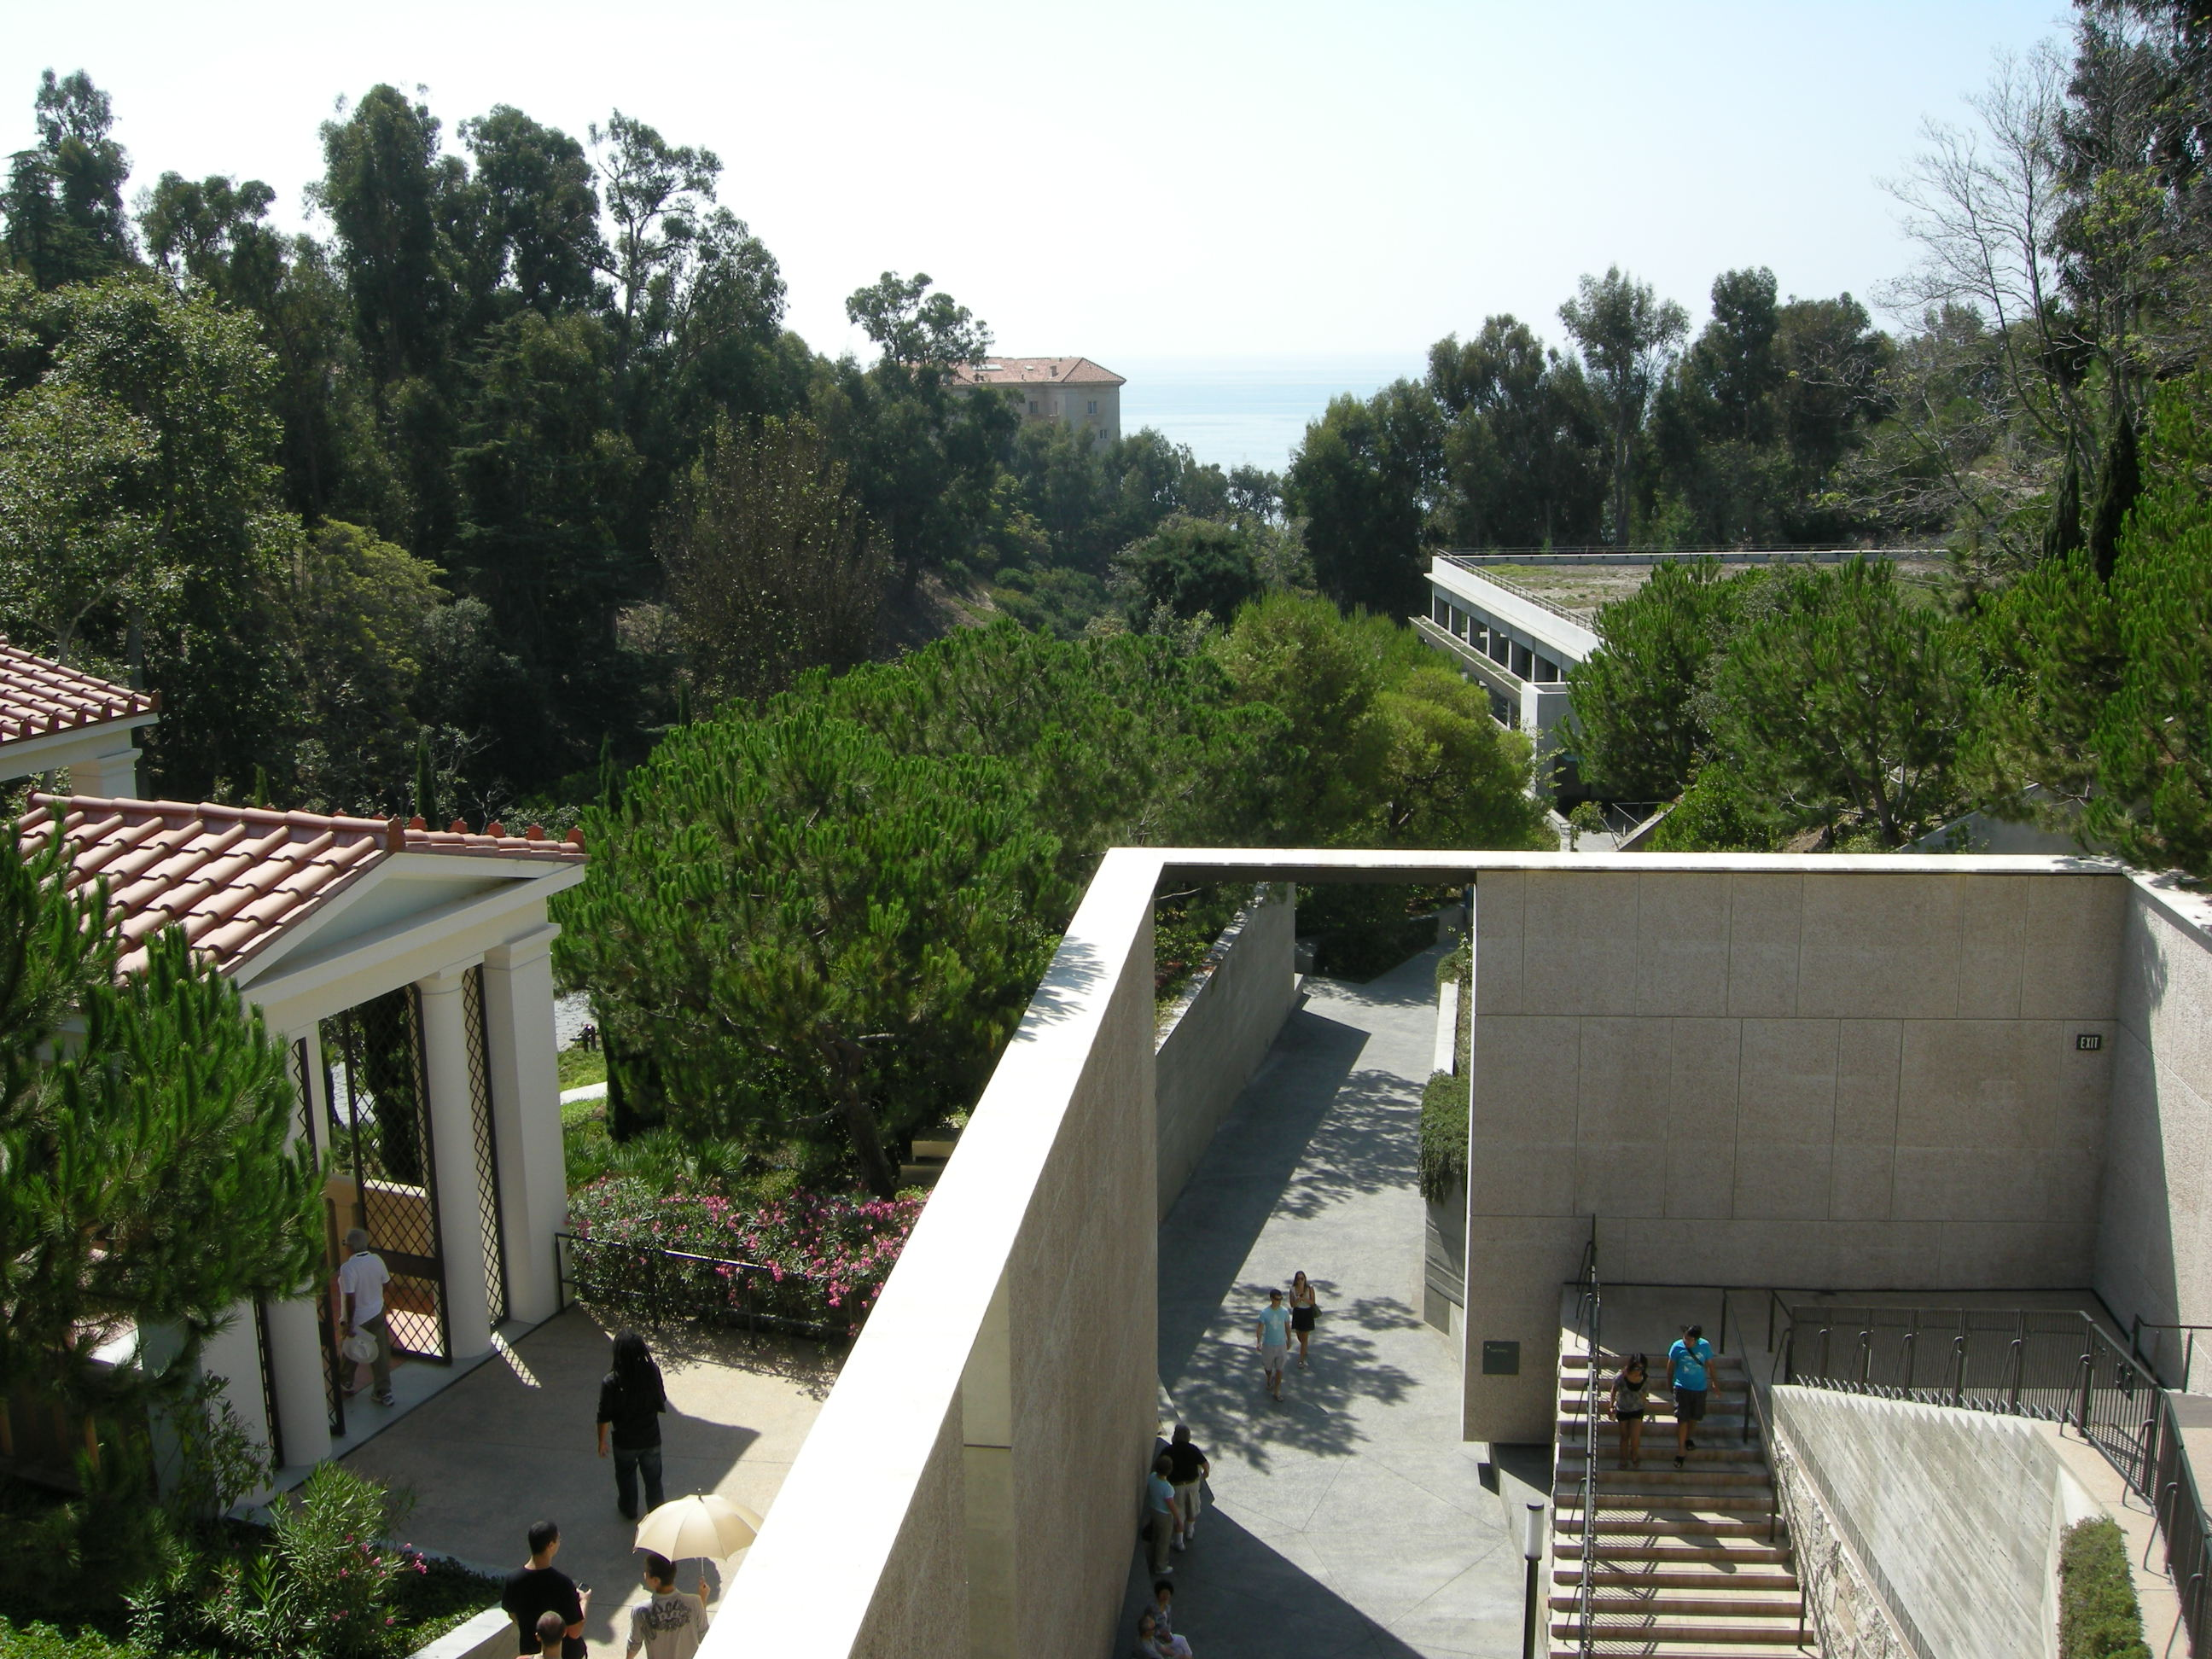 File:Getty villa, terrazza.JPG - Wikimedia Commons